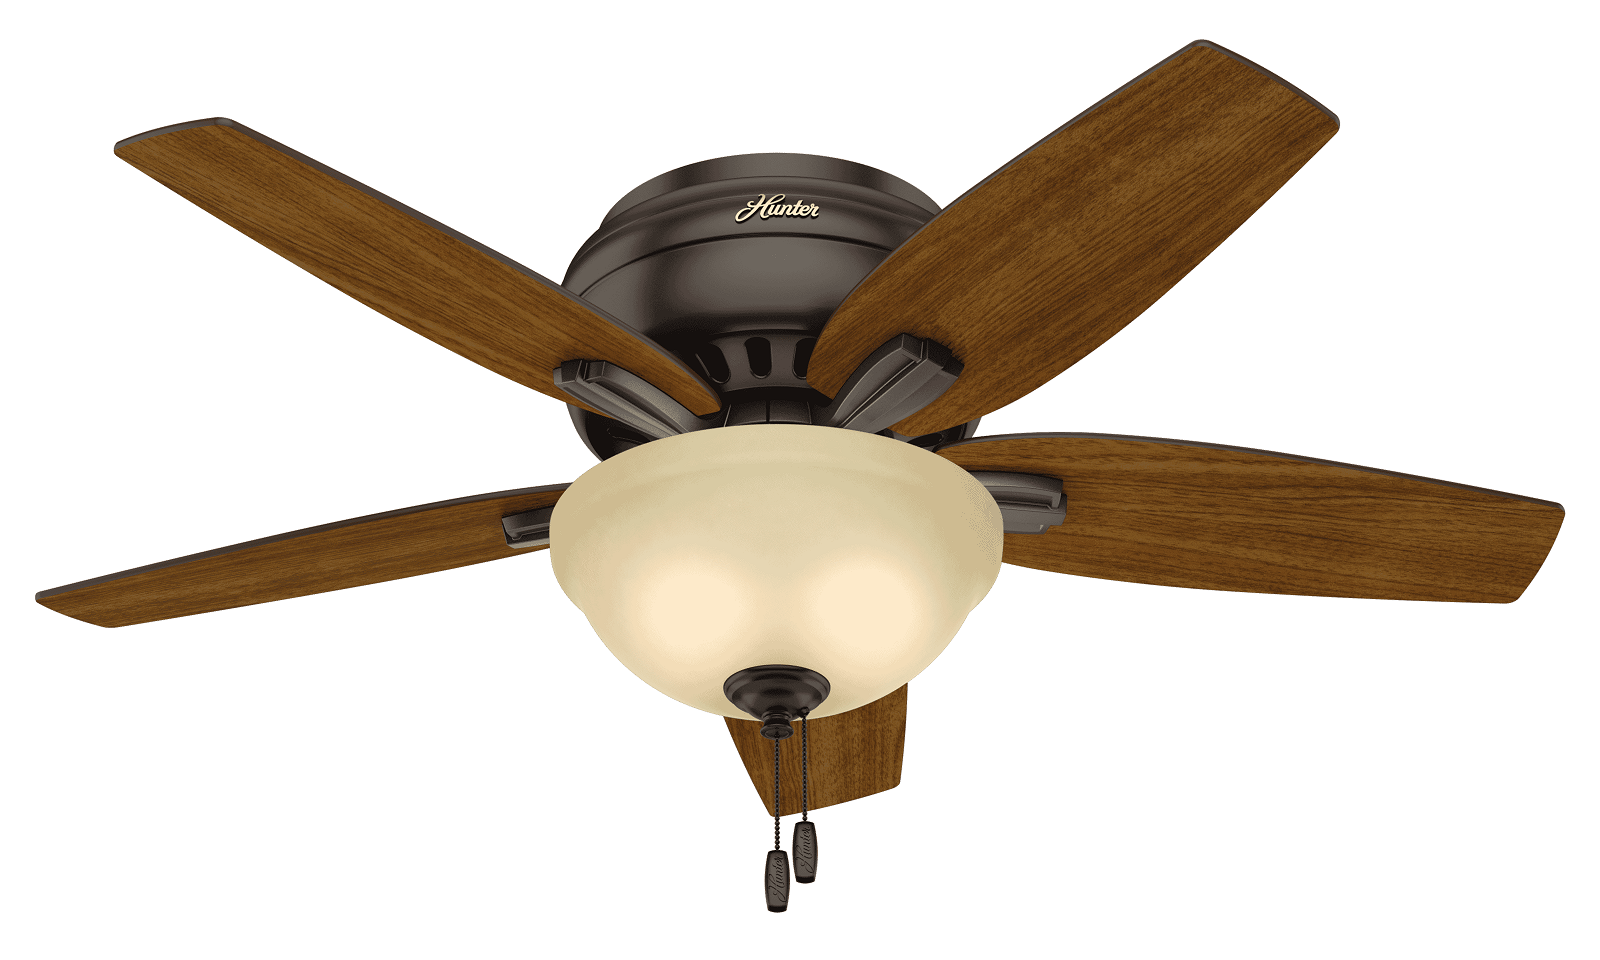 Three Days To Bettering The best way You Decorative Ceiling Fan With Light